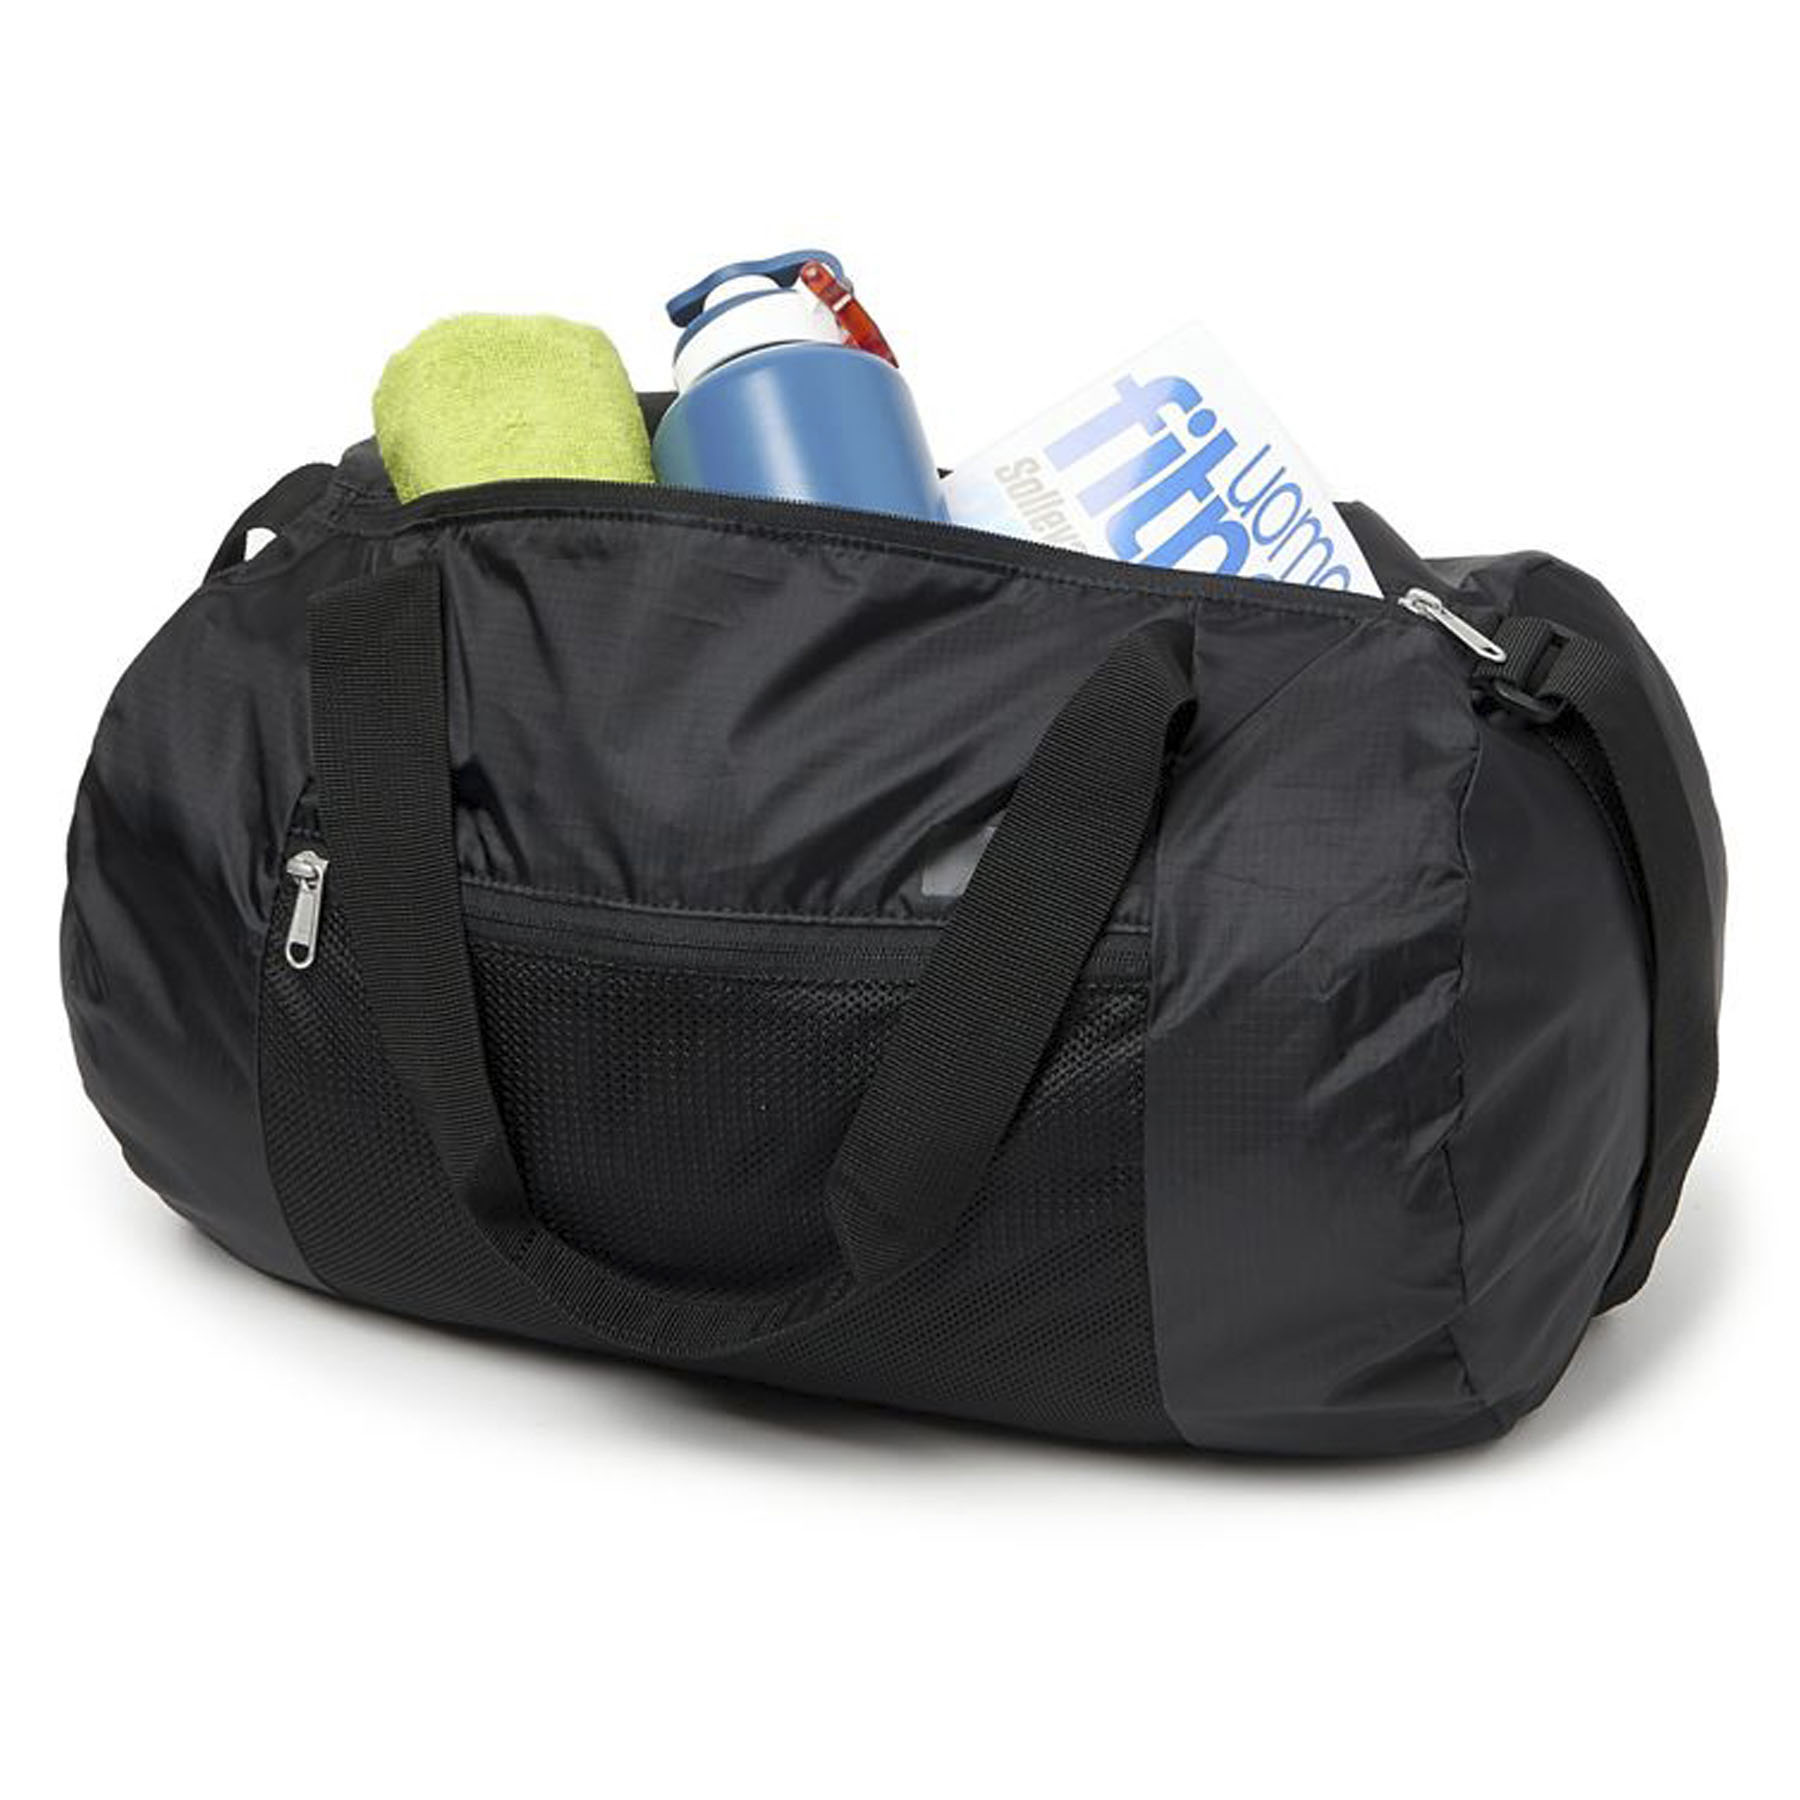 e6d1ef9621 Oakley Packable Duffle Bag